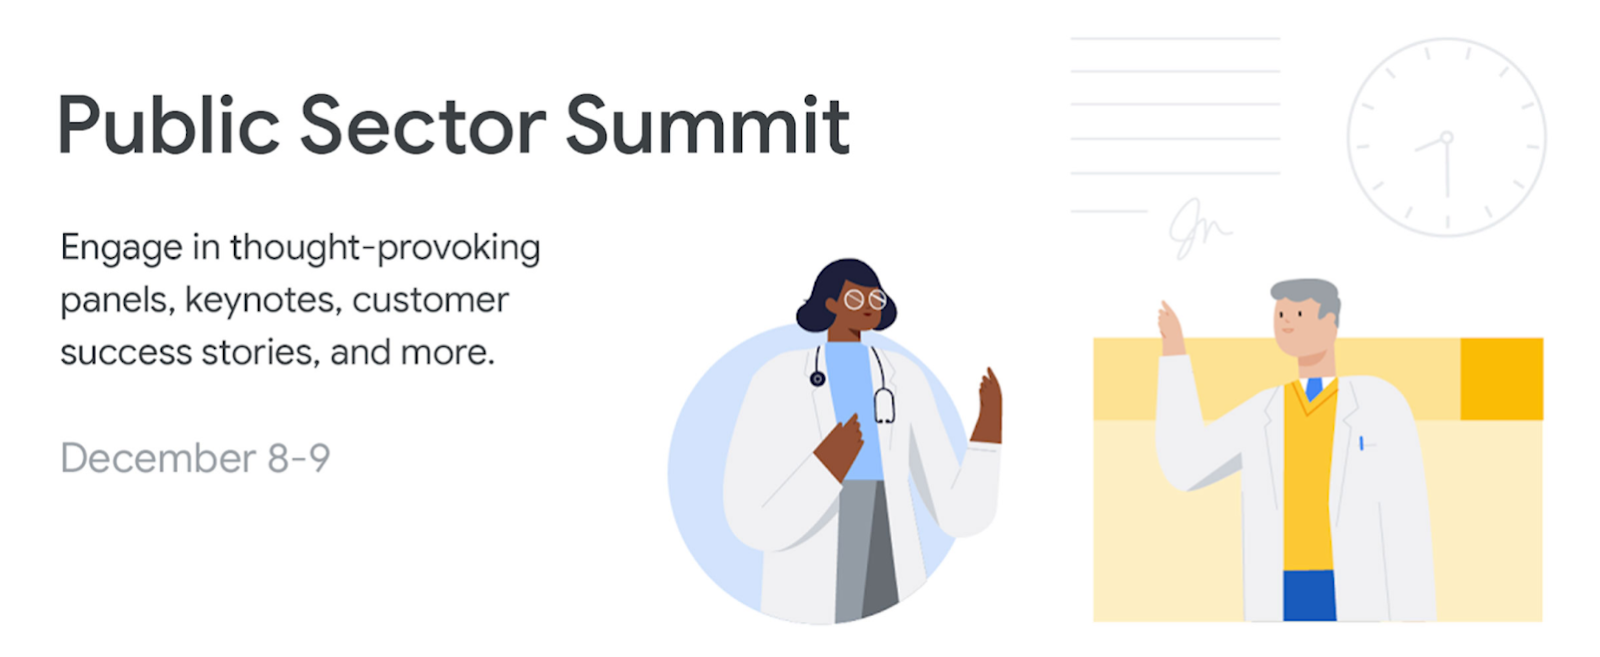 Illustration of two doctors. Text reads: Public Sector Summit, Engage in thought-provoking panels, keynotes, customer success stories and more. Dec 8-9.